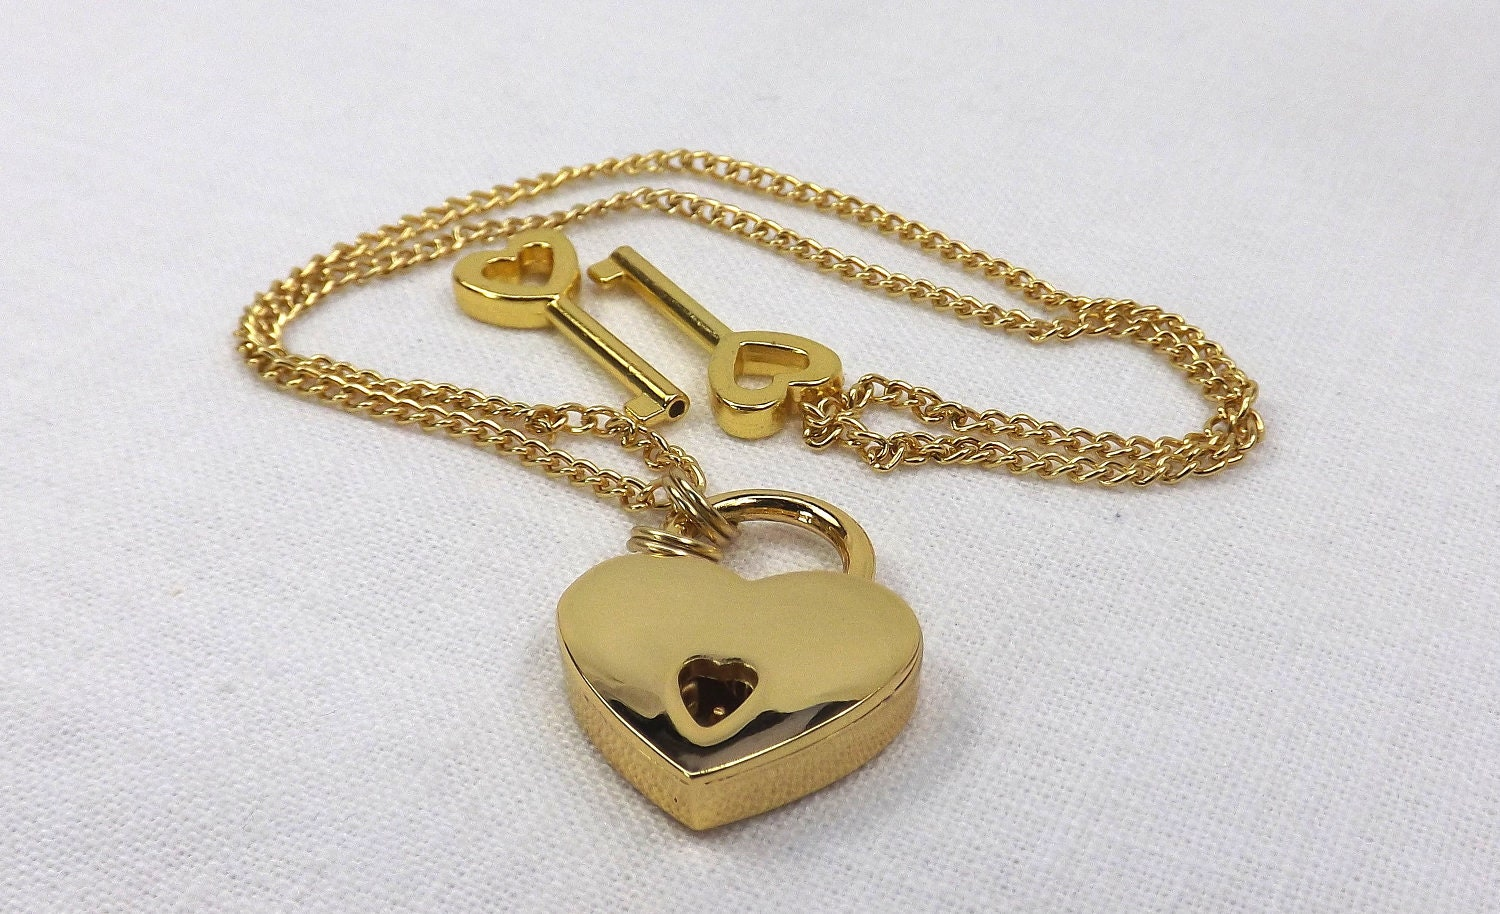 Locking Jewelry Gold color heart lock necklace gift for her submissive locking jewelry - product images  of